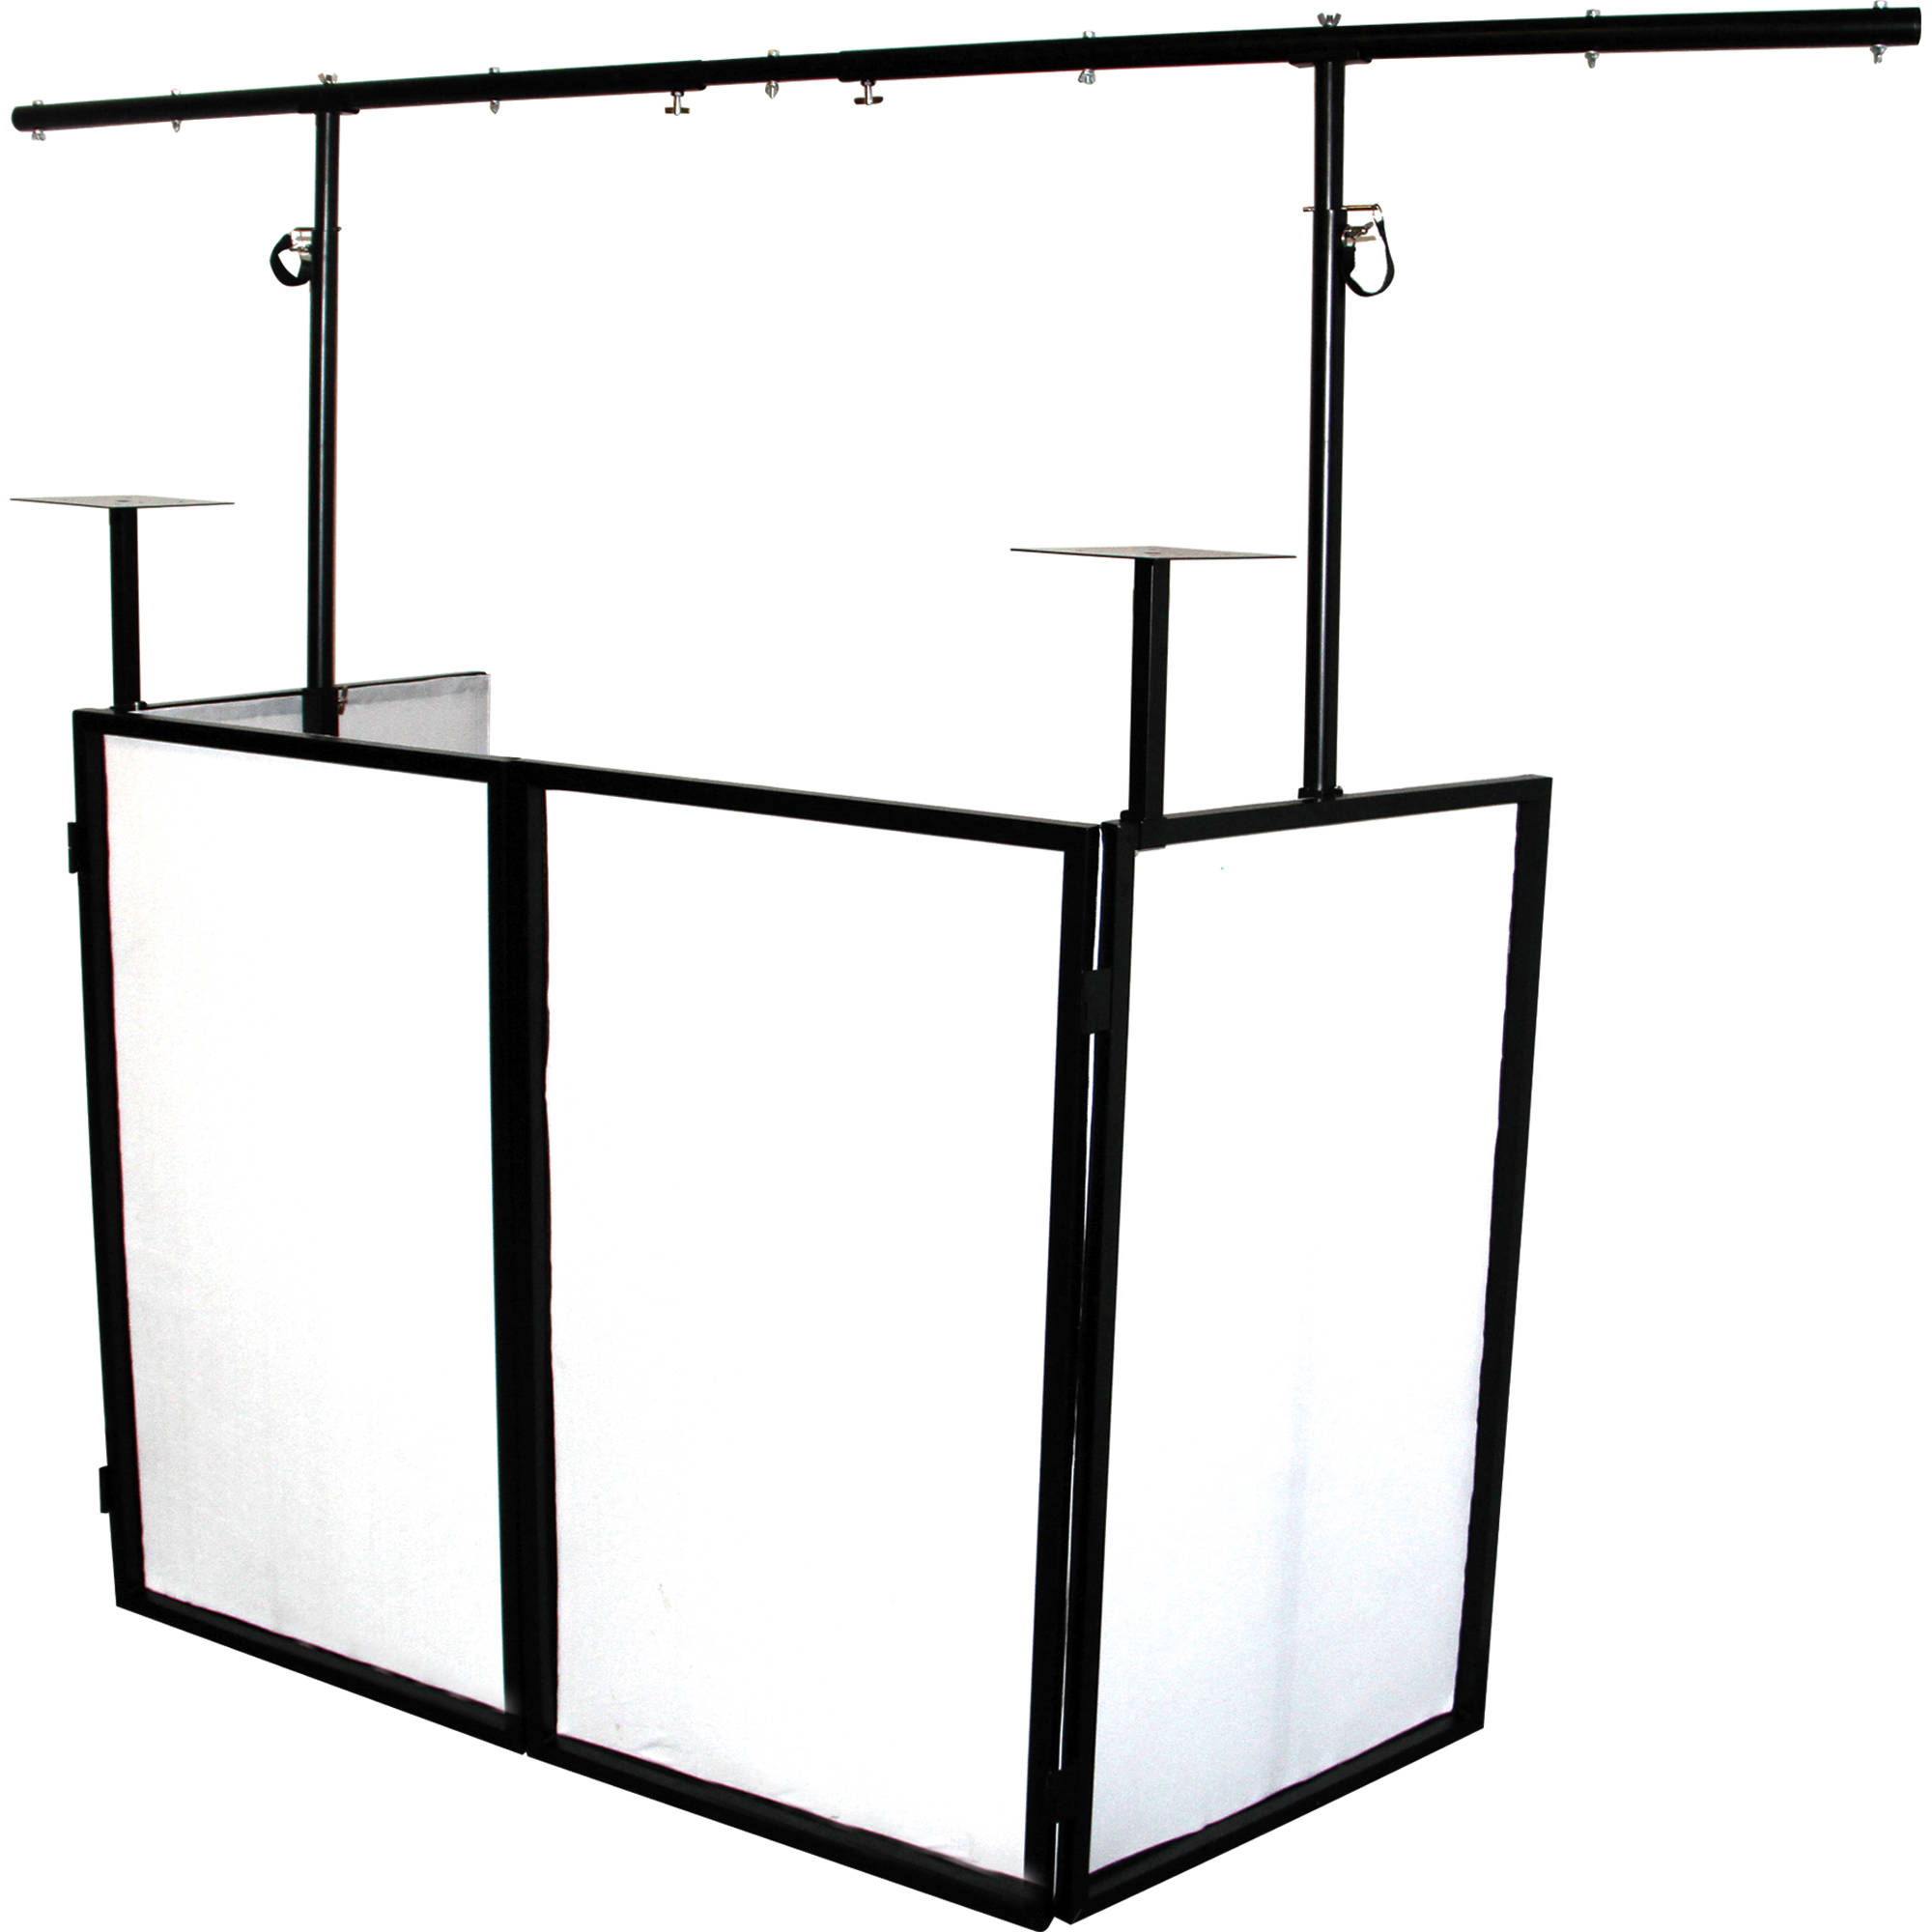 2000x2000 Novopro SDX Foldable DJ Booth With Lighting Bar And SDXBOOTH BampH